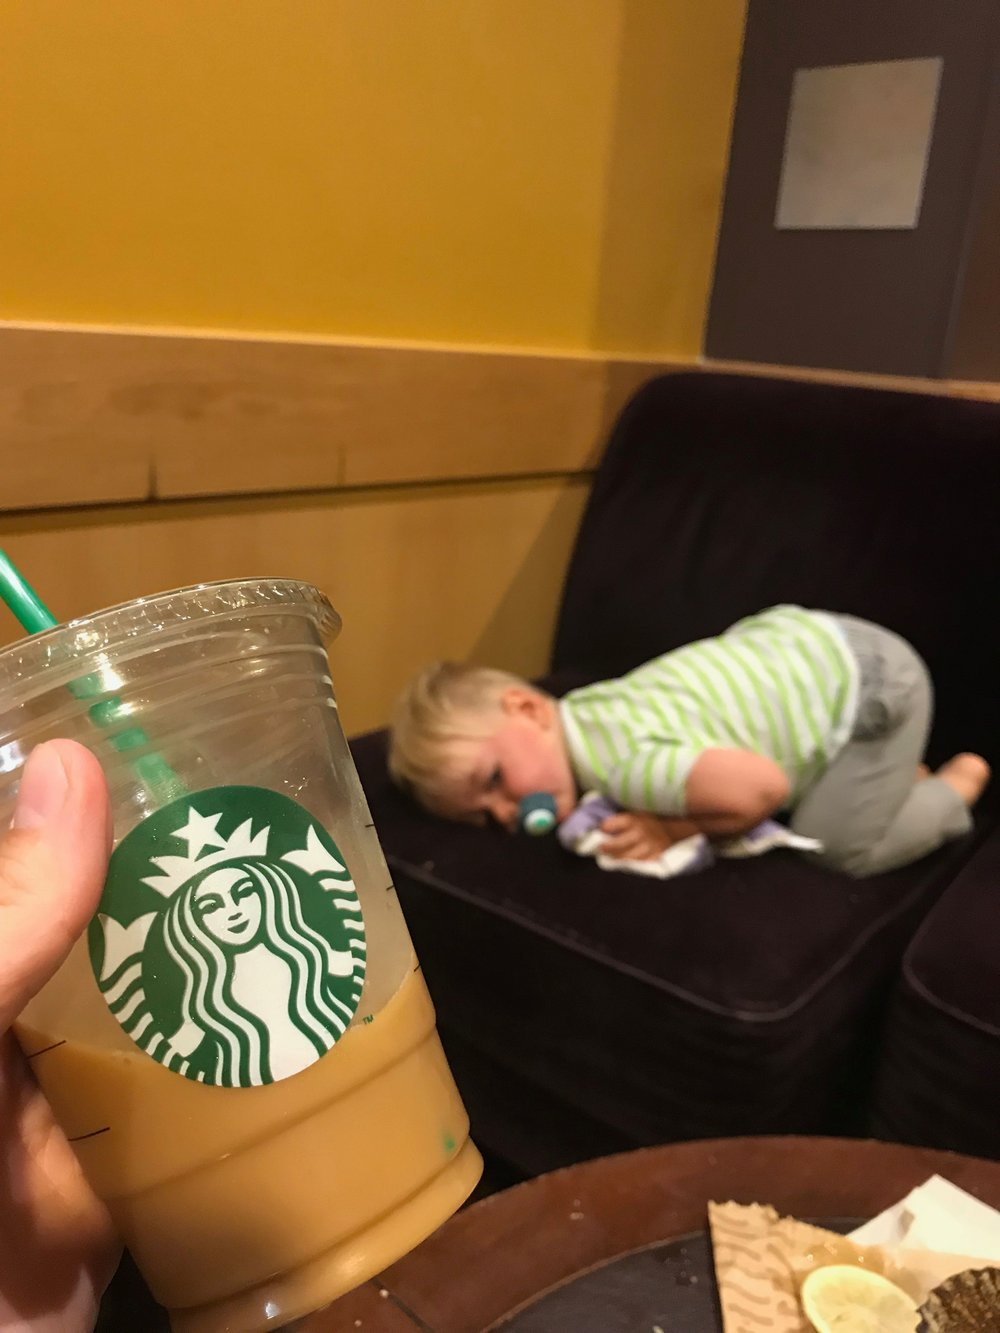 Mama got a coffee and our boy was trying to recover